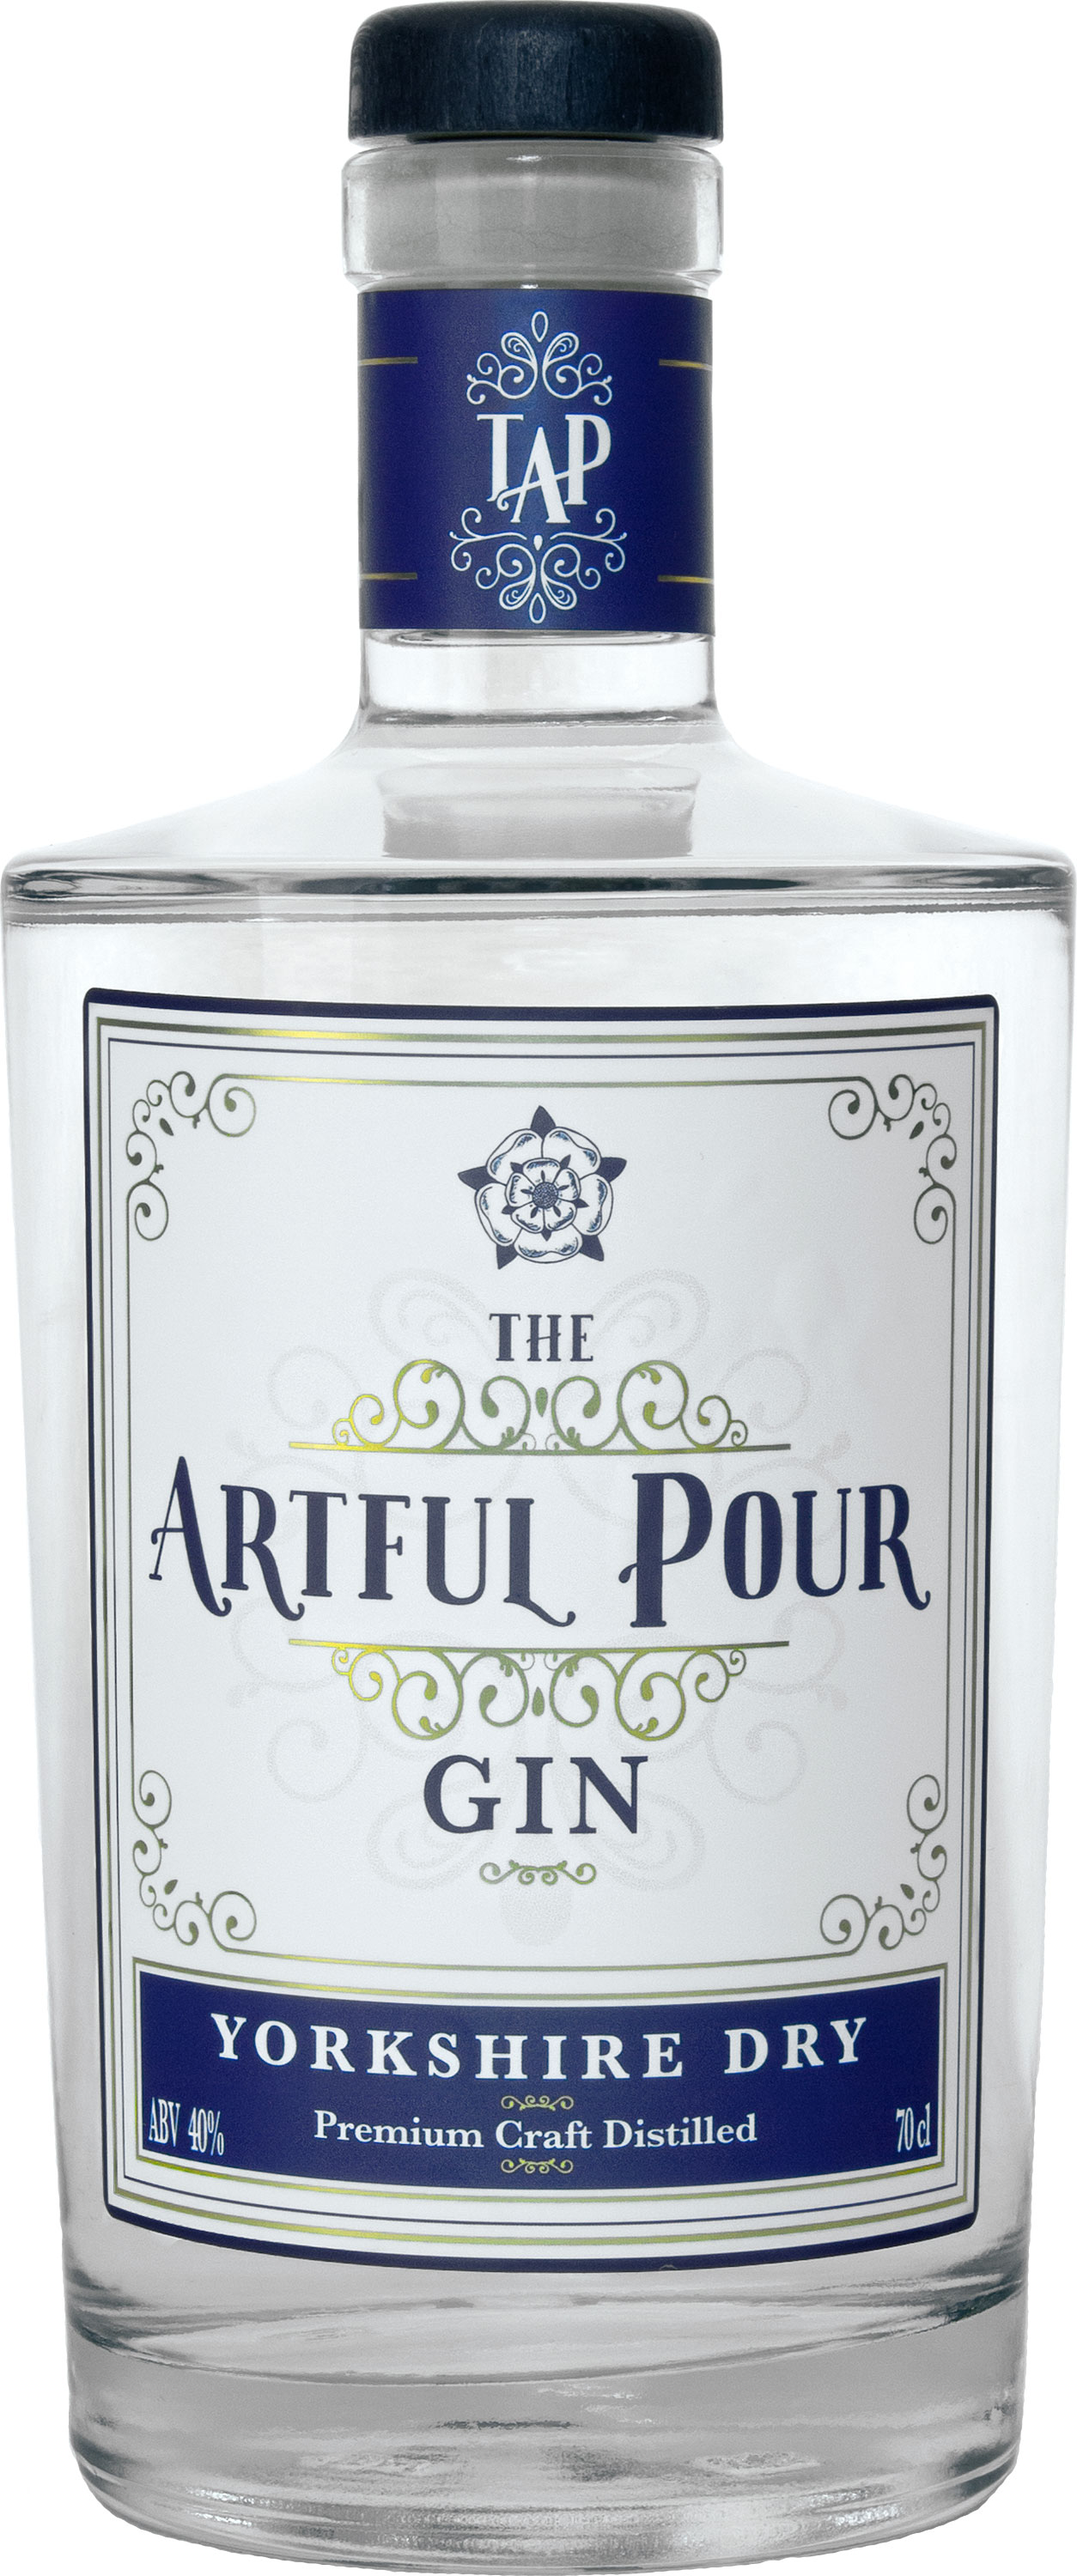 The Artful Pour - Yorkshire Dry Gin 70cl Bottle